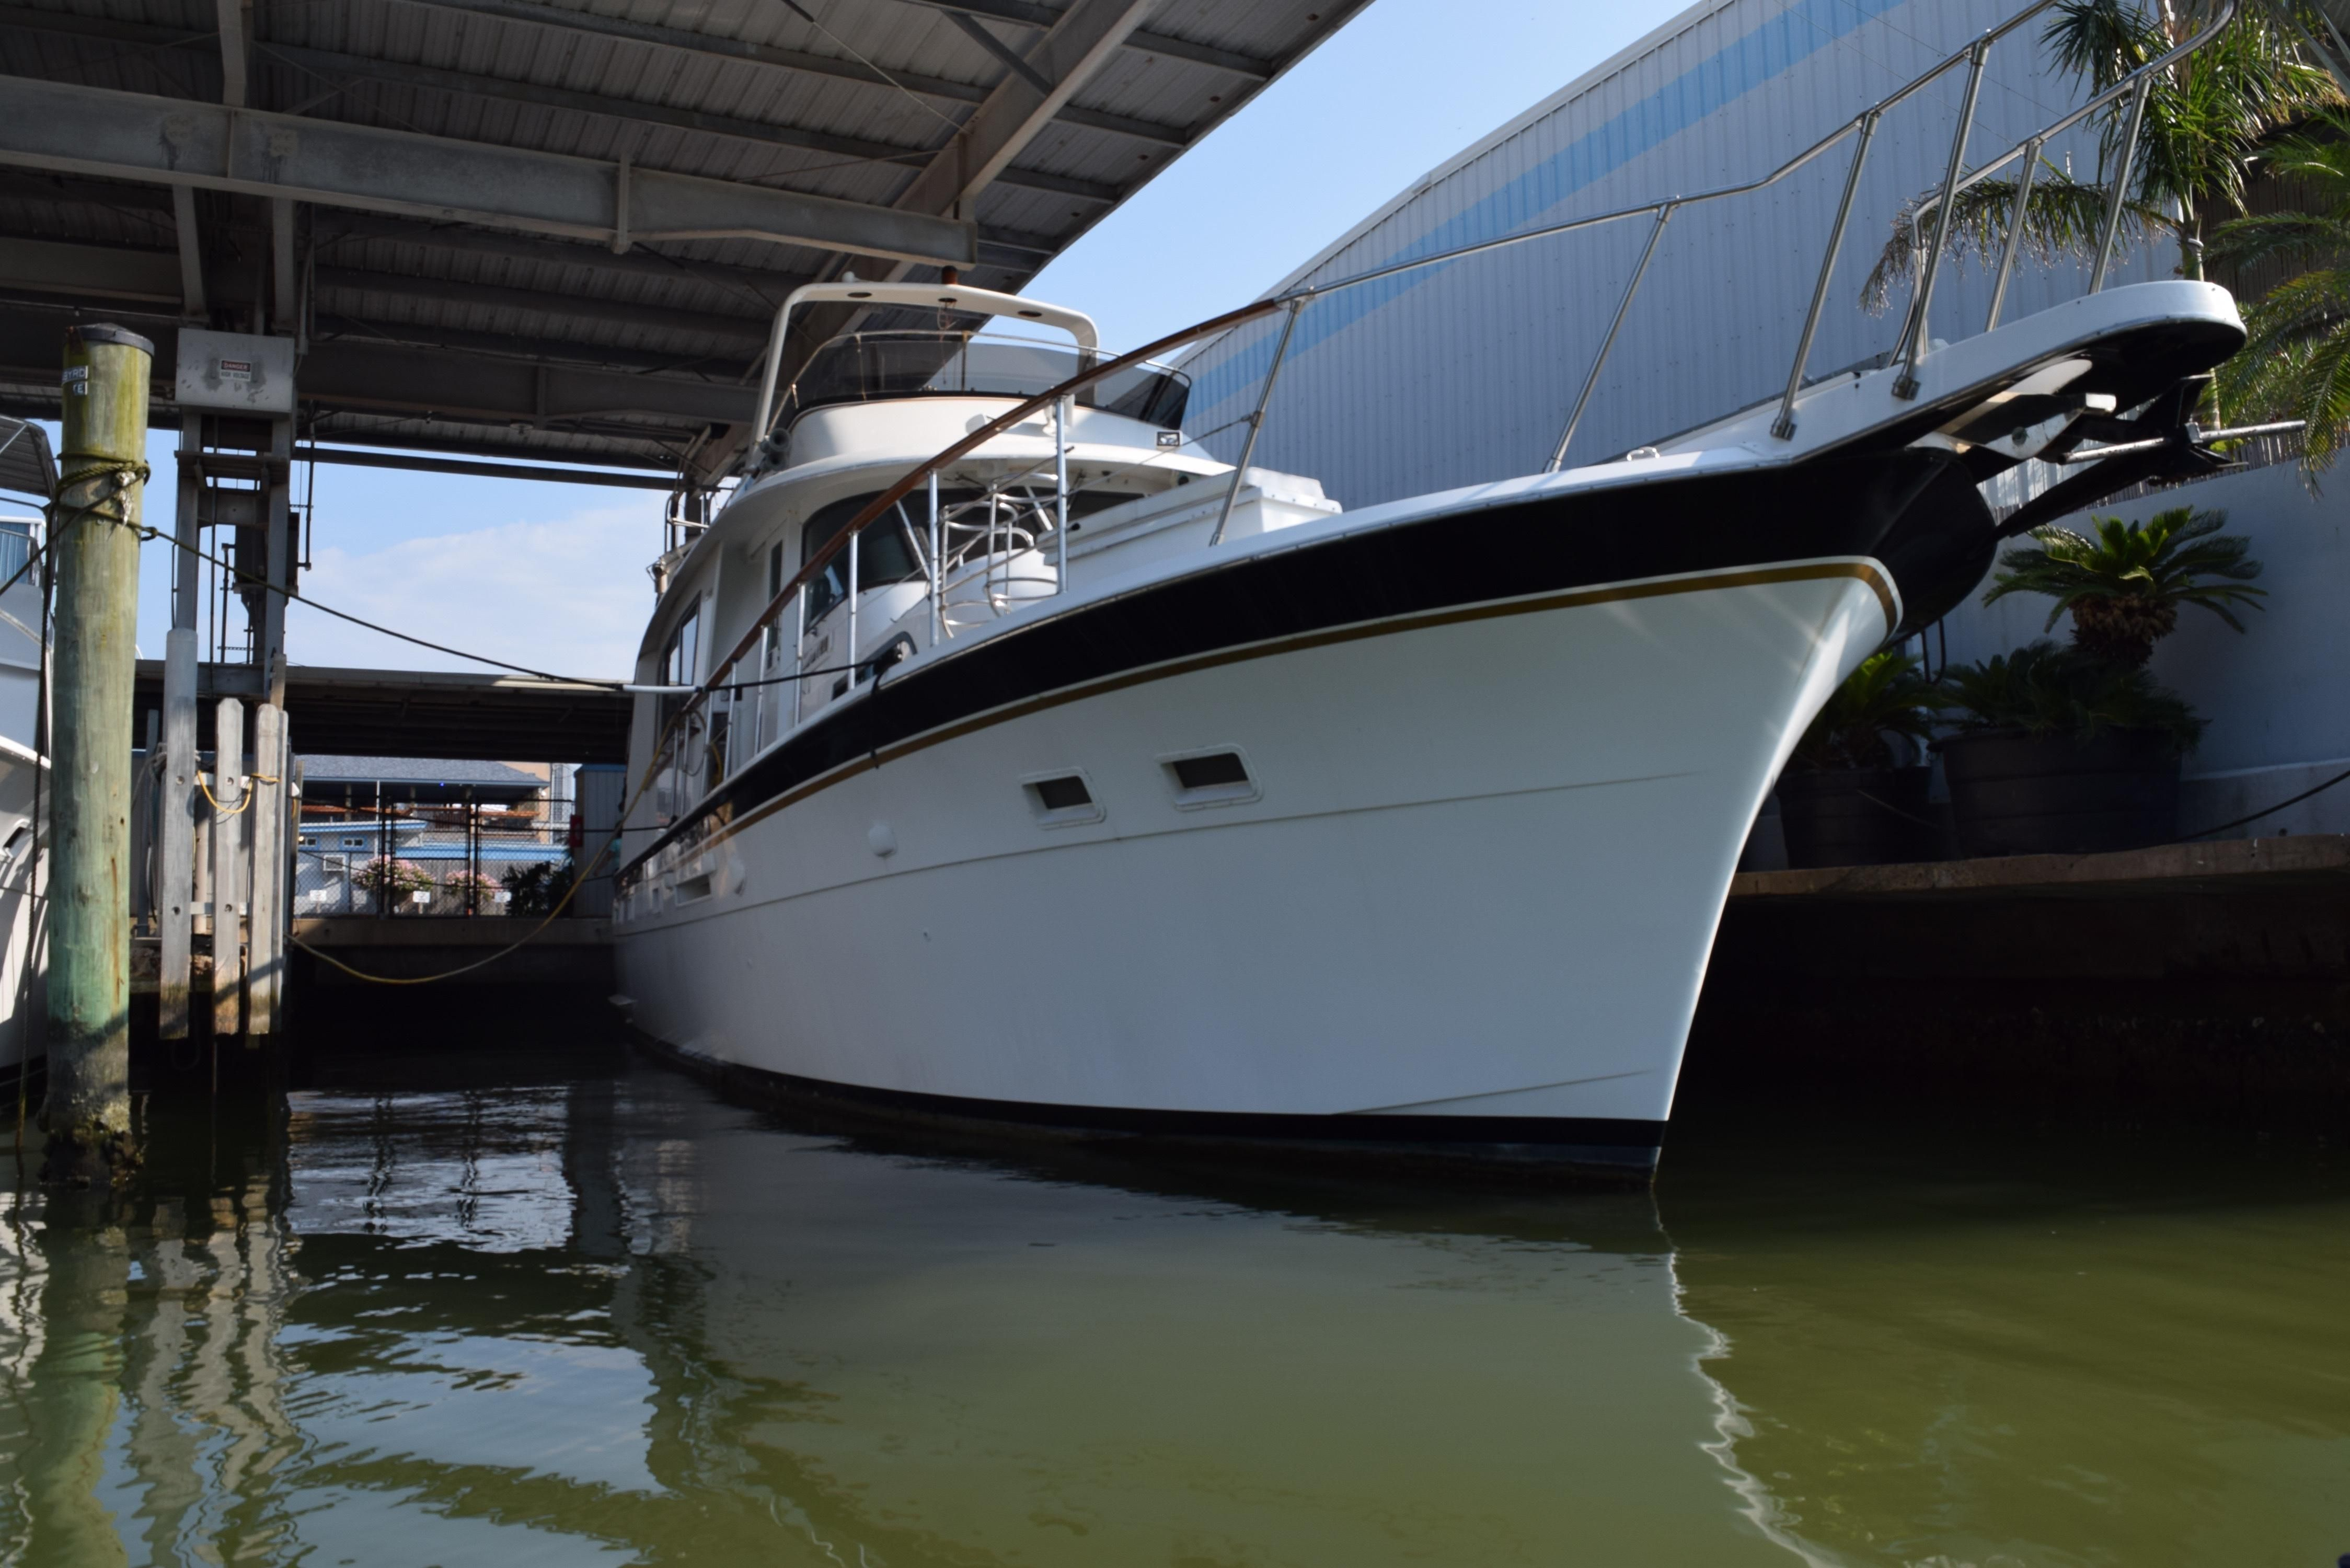 1980 hatteras motor yacht power boat for sale www for Large motor yachts for sale